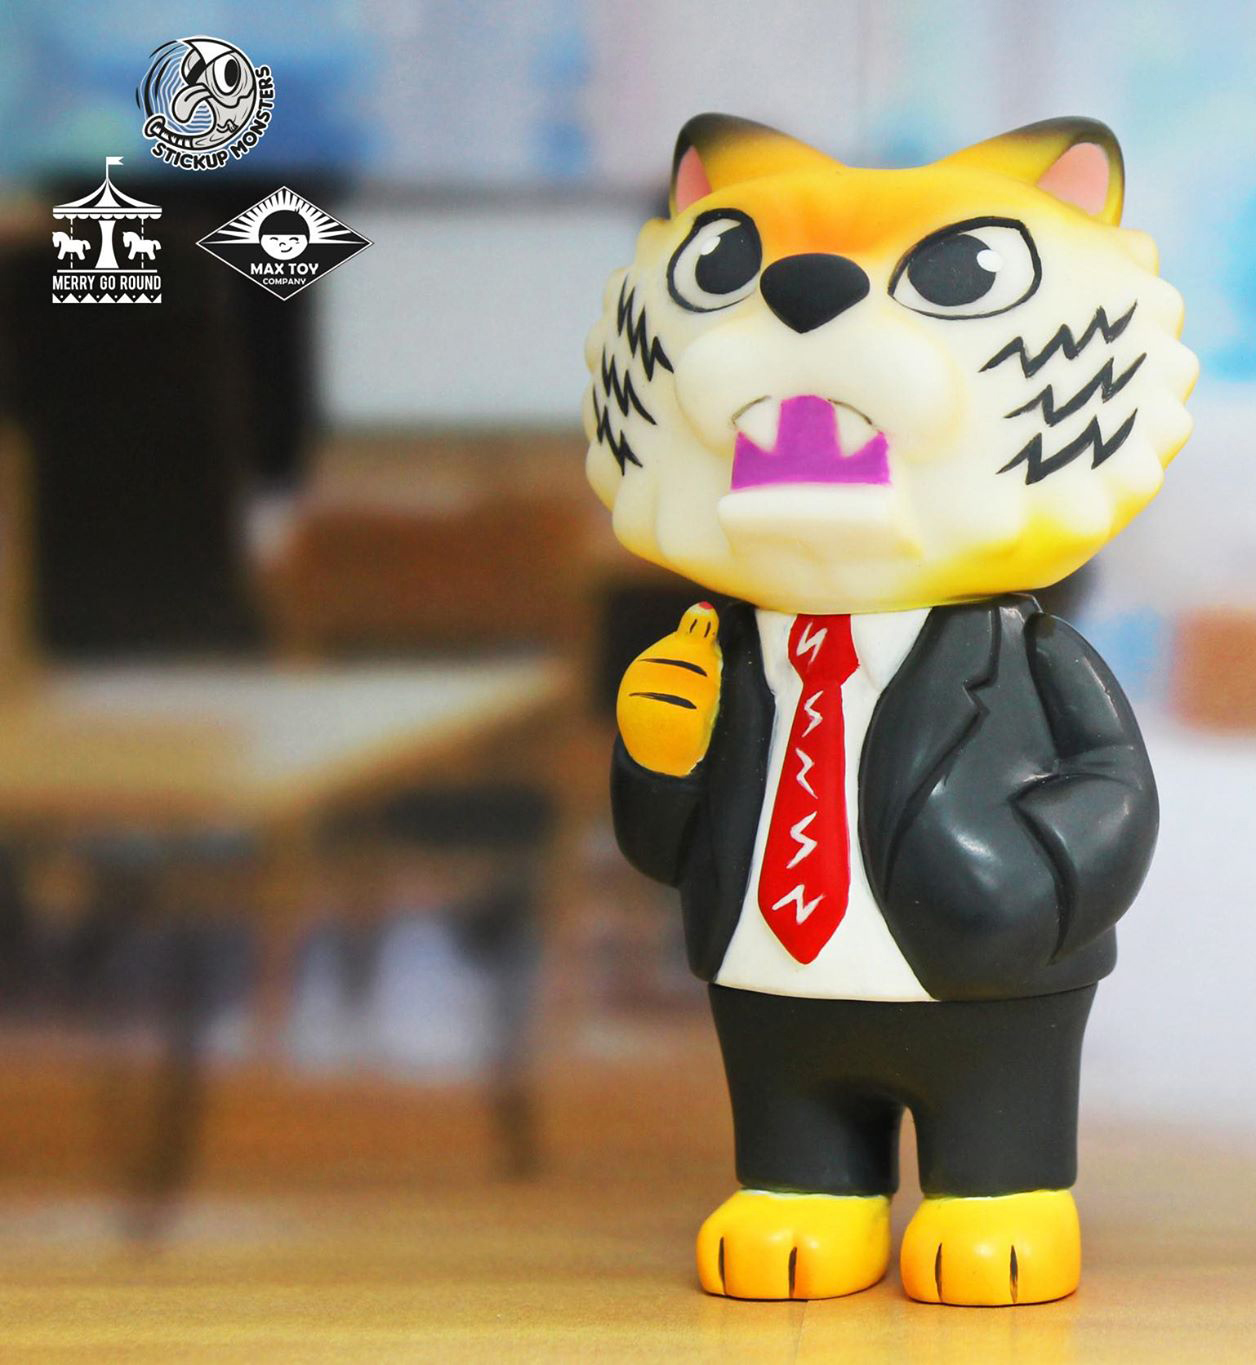 Pre Order - New Tiger Boss Javier Jimenez x Merry Go Round x Max Toy Company